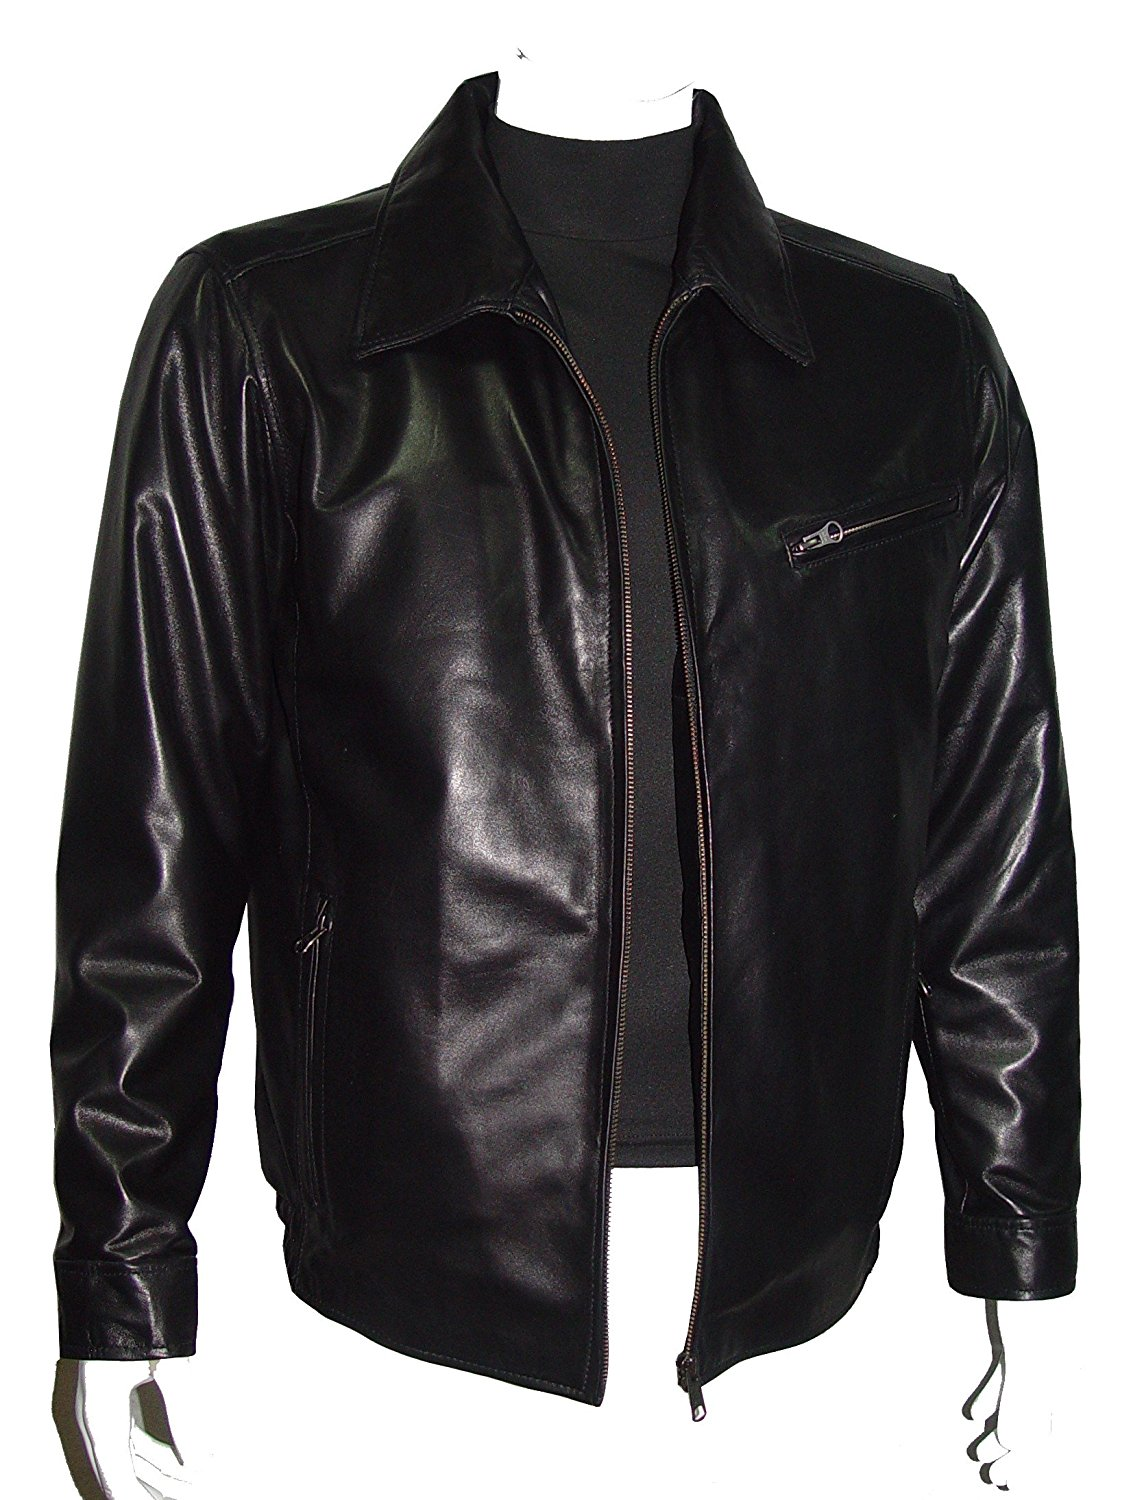 6be488d1b1db77 Get Quotations · Nettailor Tall Big Man 1052 BIG TALL Size 4 Season Leather  Jacket Zip Out